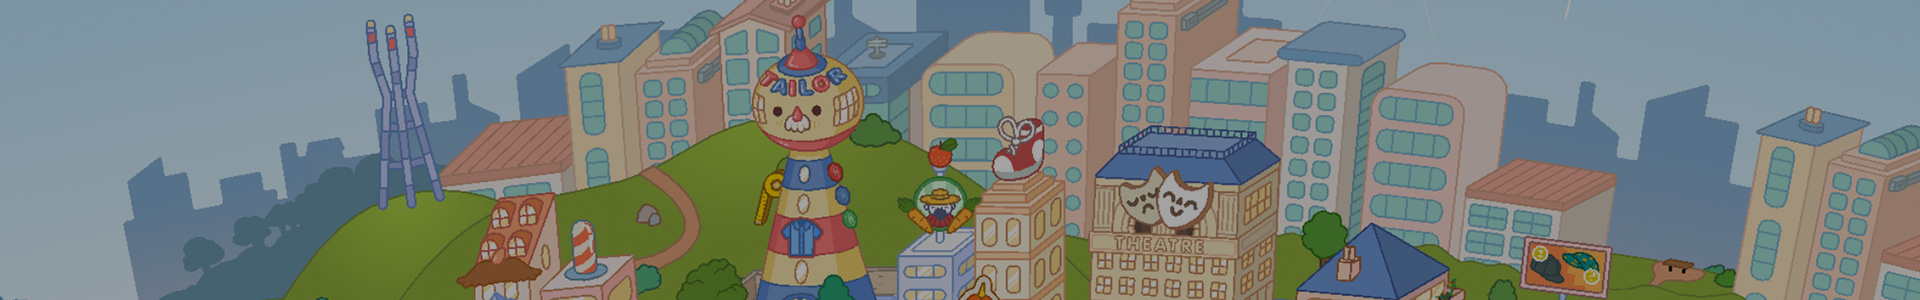 Banner media of Toca Life World video game.